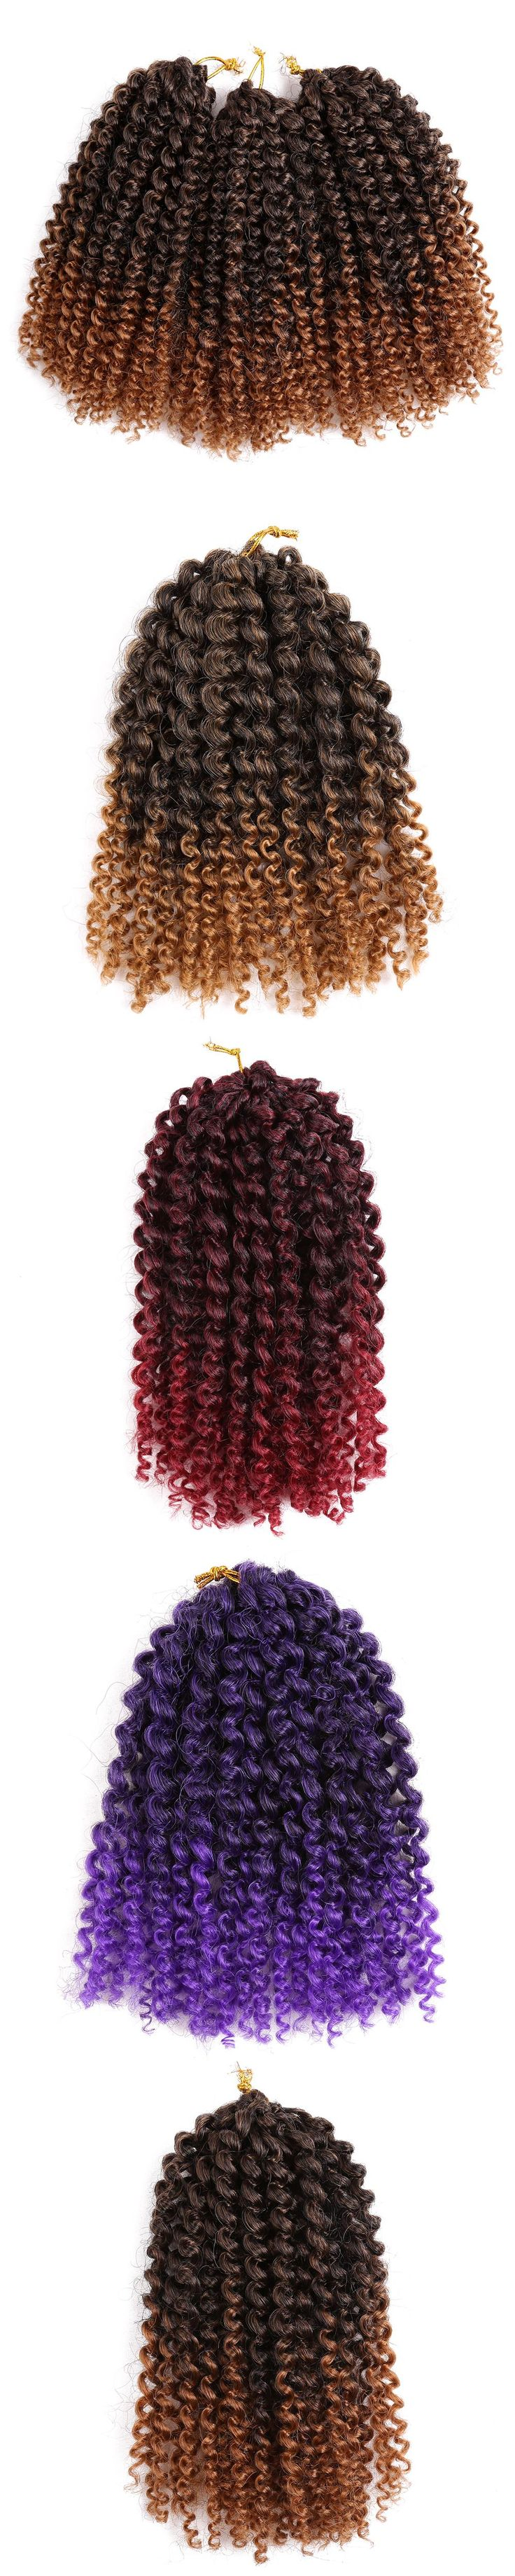 8inch Crochet Curly Braids Heat Resistatnt Synthetic Hair Extensions Ombre Crochet Twist Hair 3pcs/pack Golden Beauty